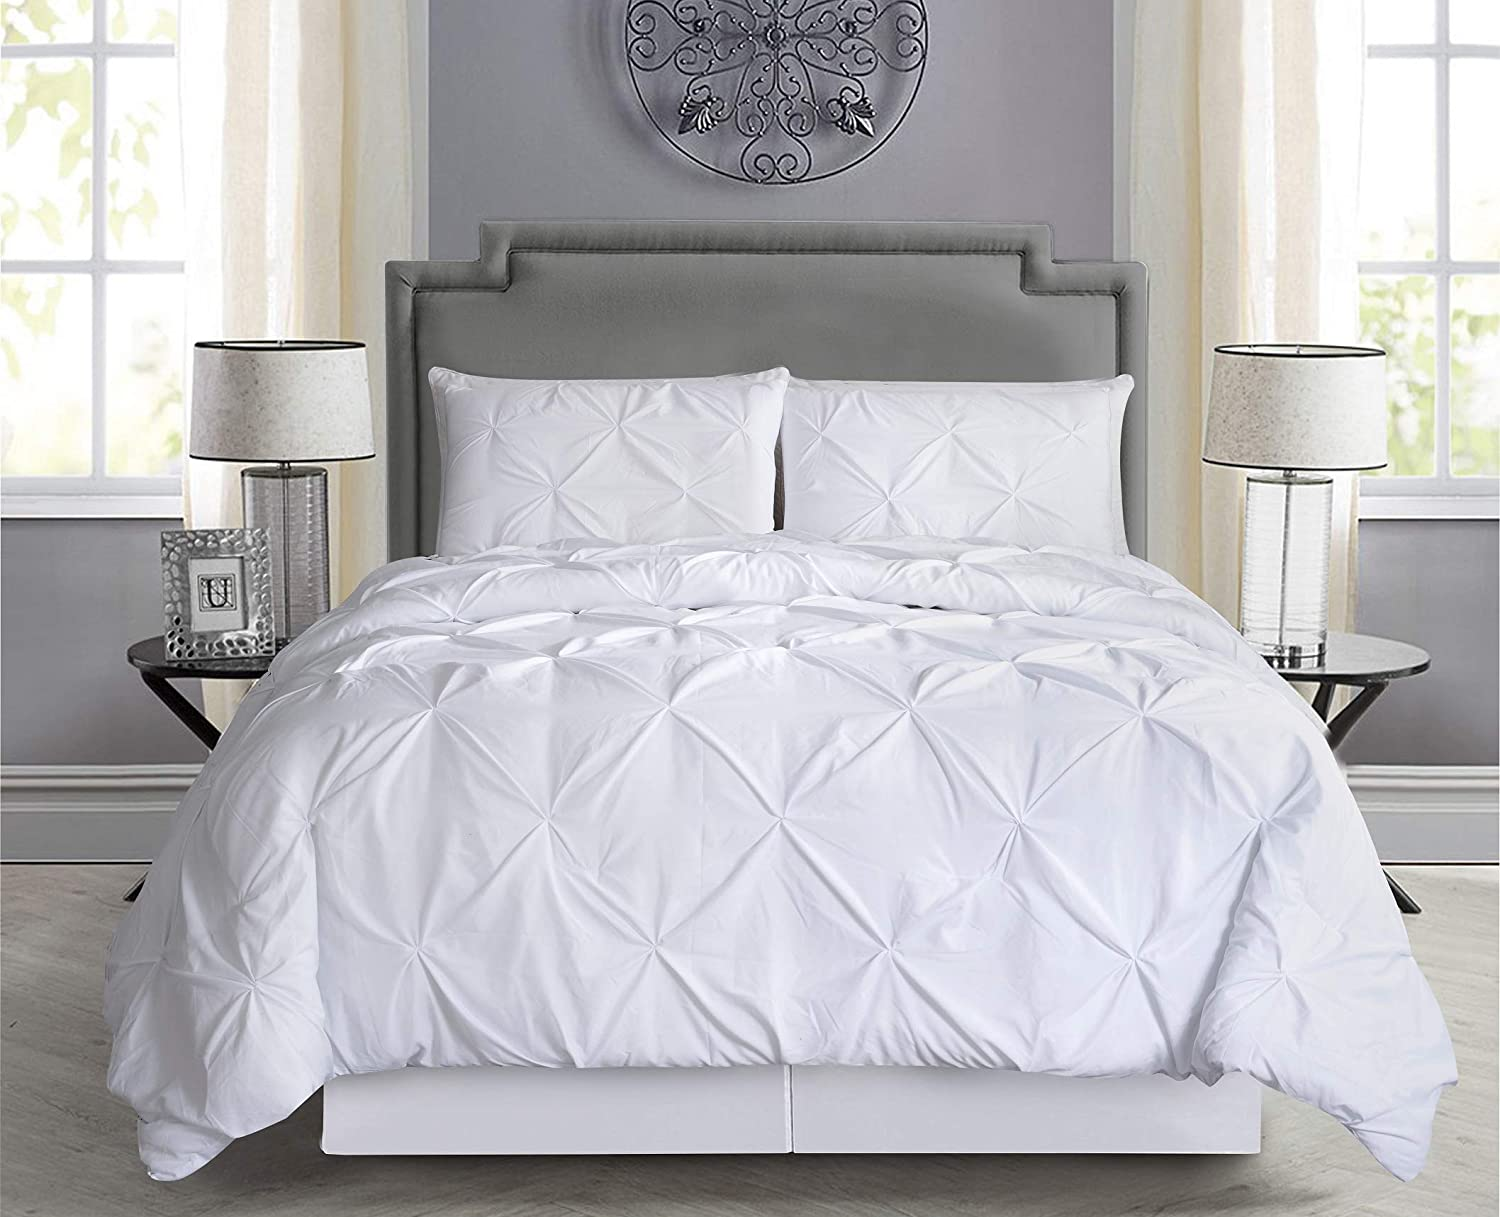 Empire Home Pintuck Hypoallergenic 8-Piece Bed in A Bag Comforter Set - Sheet Set Included!! (White, Queen)